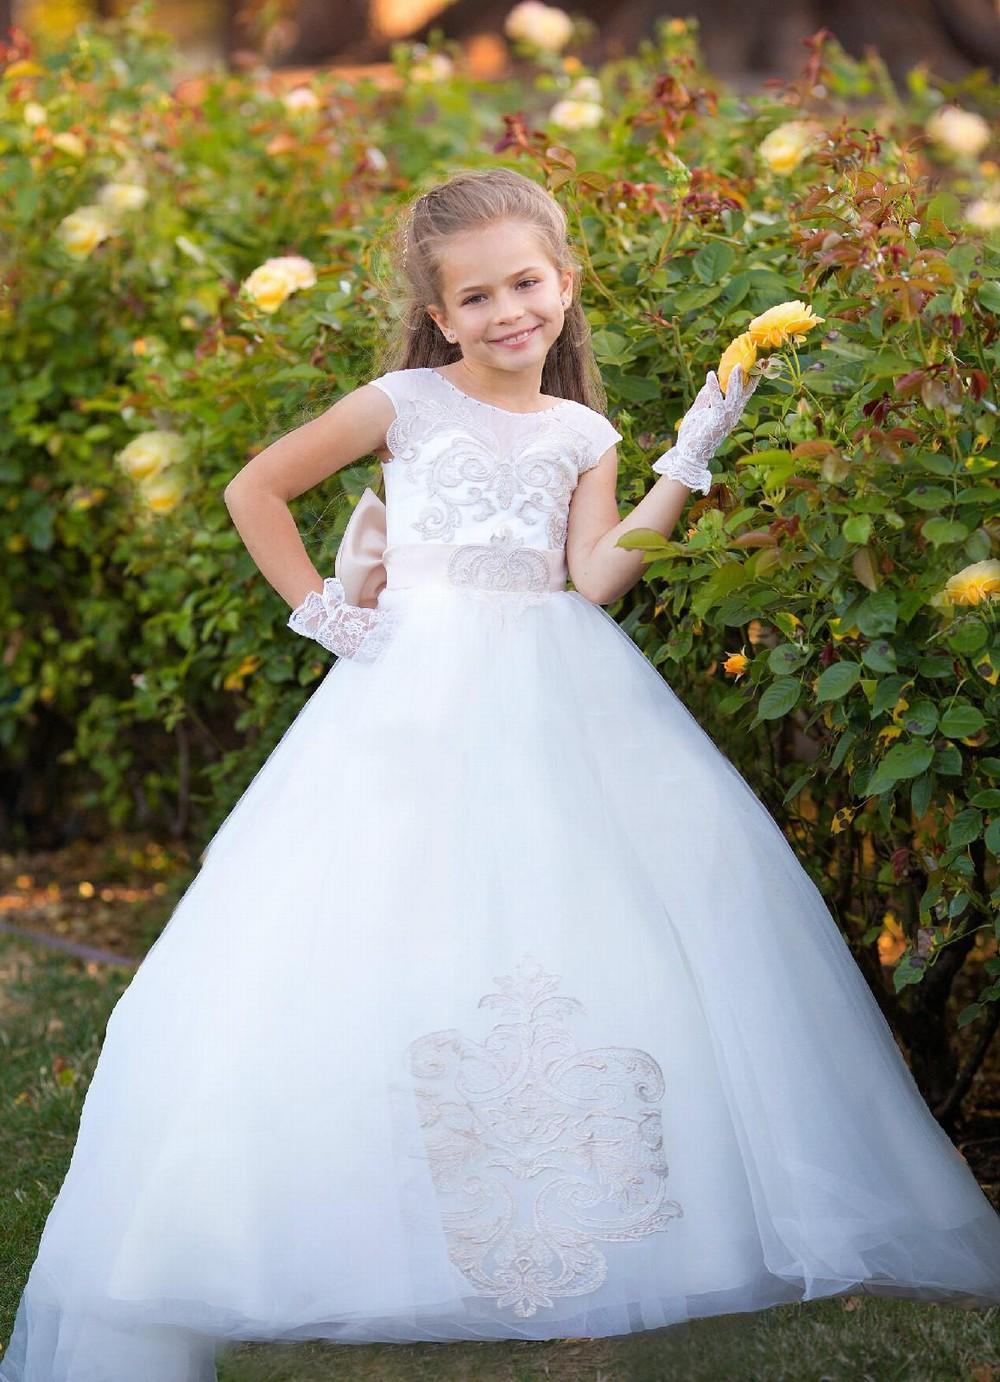 592a605afba Champagne Lace Flower Girl Dress Little Kids Clothing Princess Christmas Tutu  Dress Toddler Special Wedding Formal Occasion Custom 196 Dress Dresses From  ...